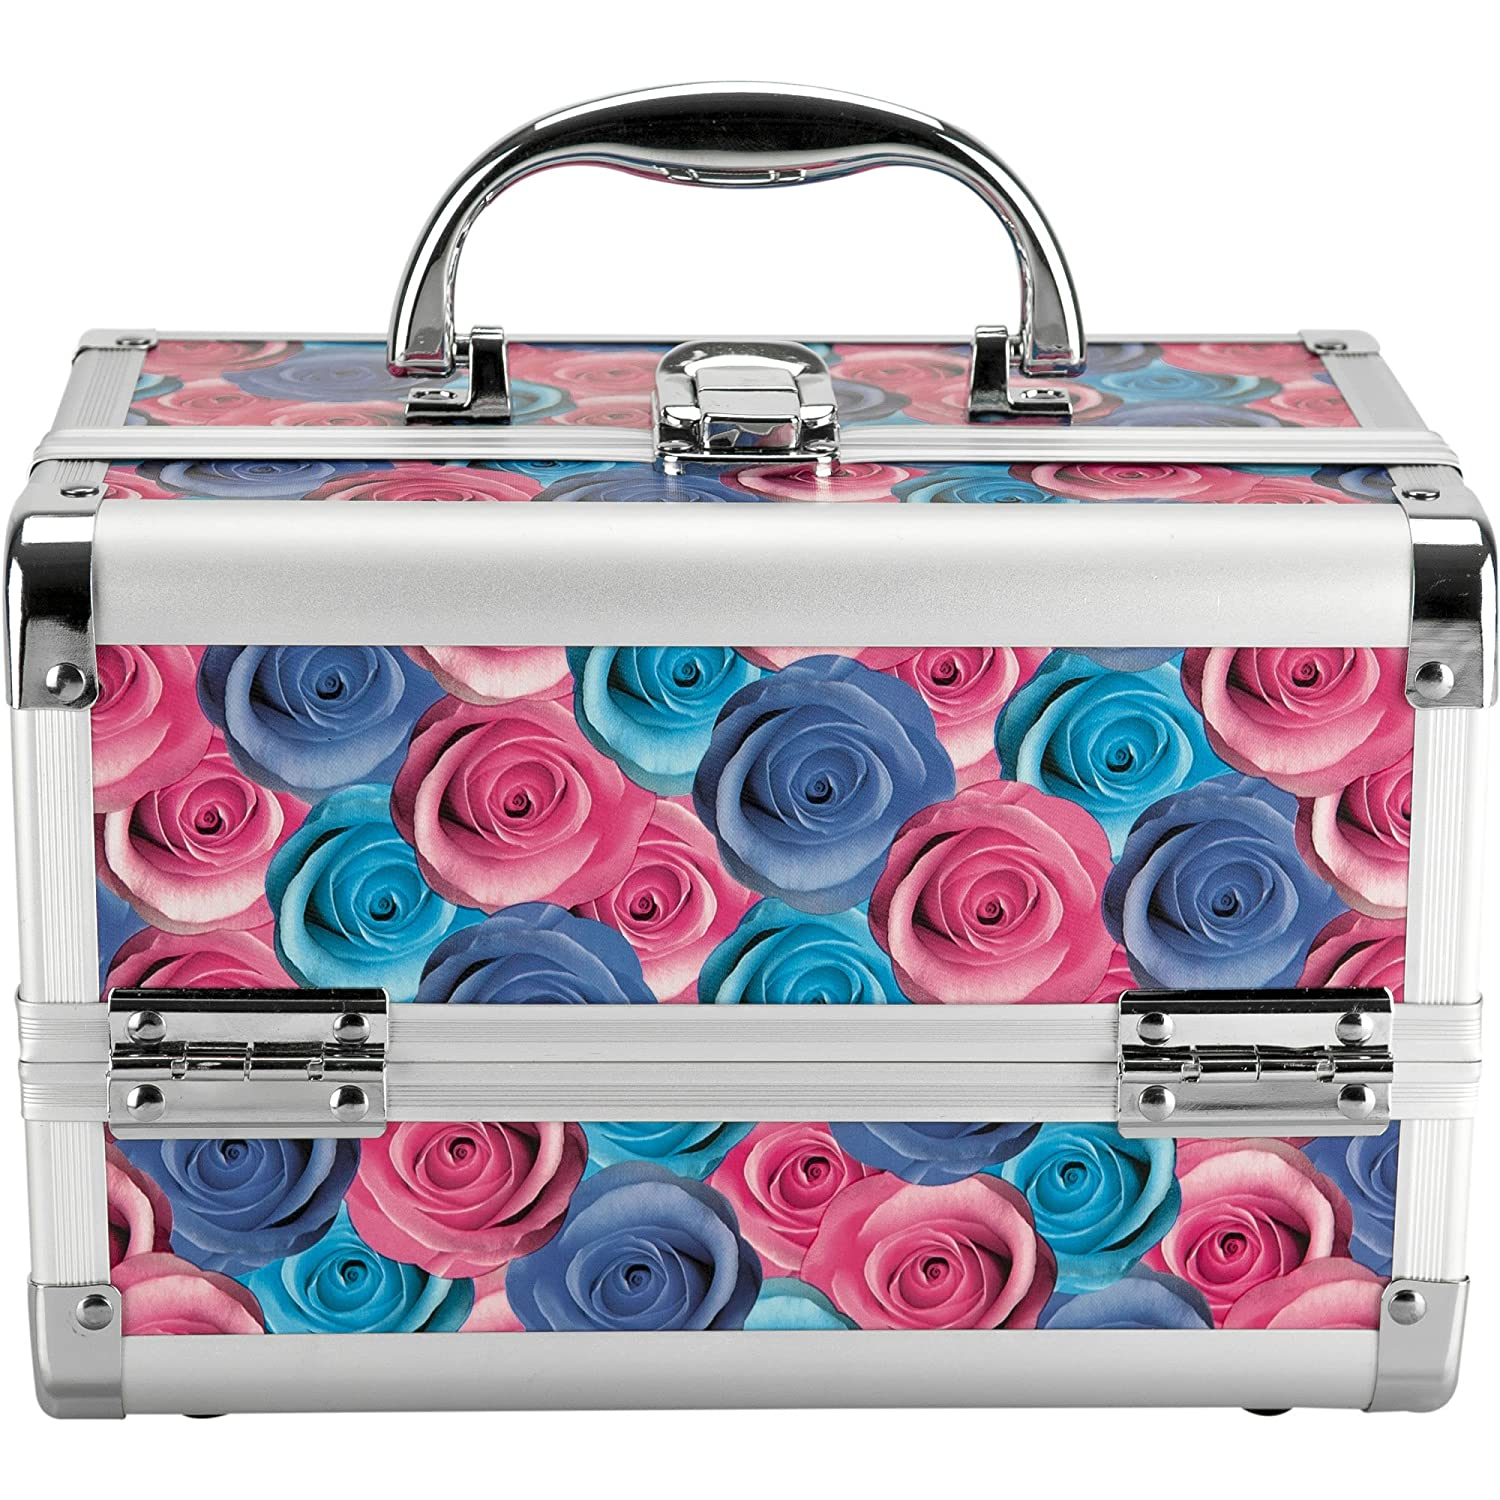 Hiker PT2201 Mini 2-Tiers Extendable Trays Makeup Train Case Portable Cosmetic Jewelry Box Organizer with Mirror, Floral PT2201RSRD